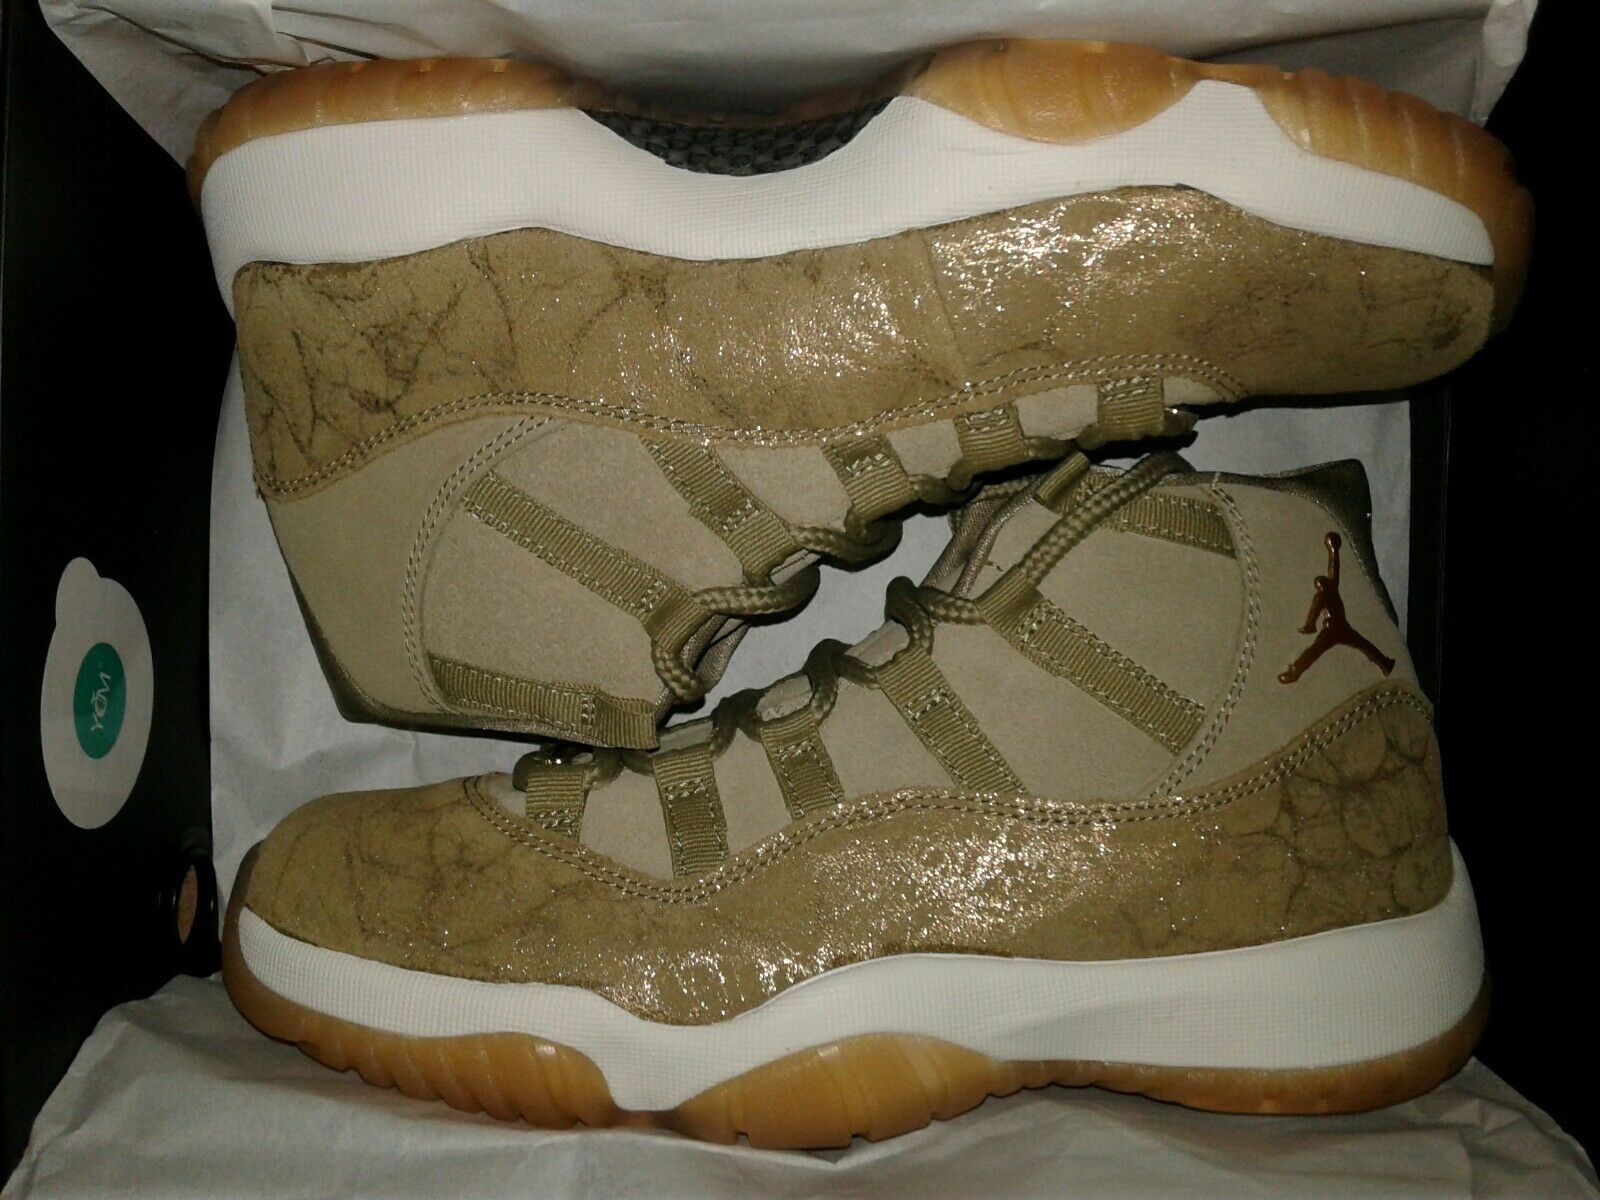 WMNS AIR JORDAN 11 RETRO NEUTRAL OLIVE MTLC STOUT-SAIL AR0715-200 SIZE 9.5